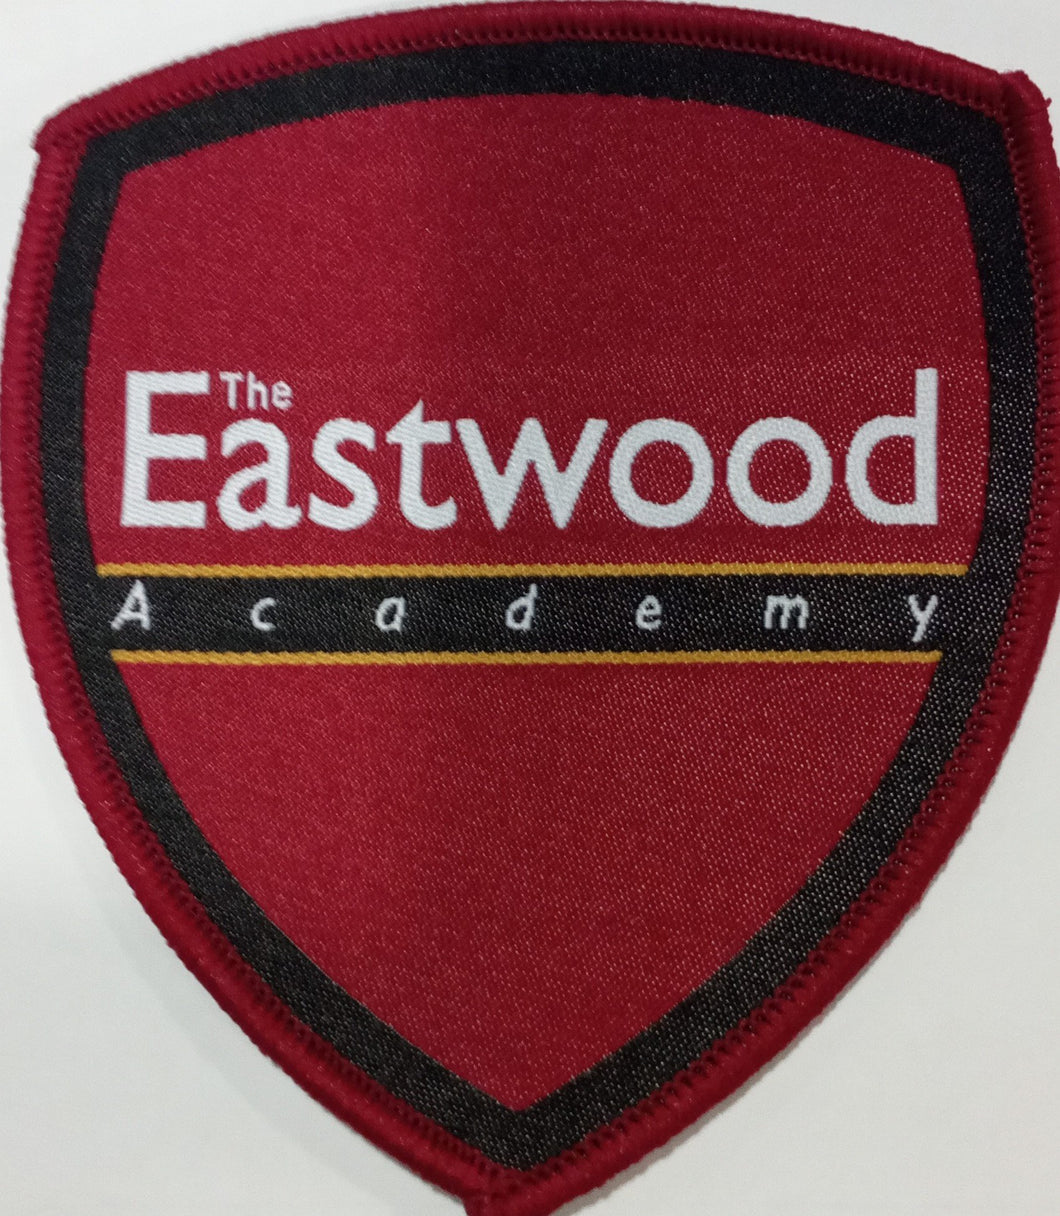 The Eastwood Academy - Sew-on-School Badge RED /YELLOW / ANY School Uniform Centres Accessories school-uniform-centres.myshopify.com Schoolwear Centres